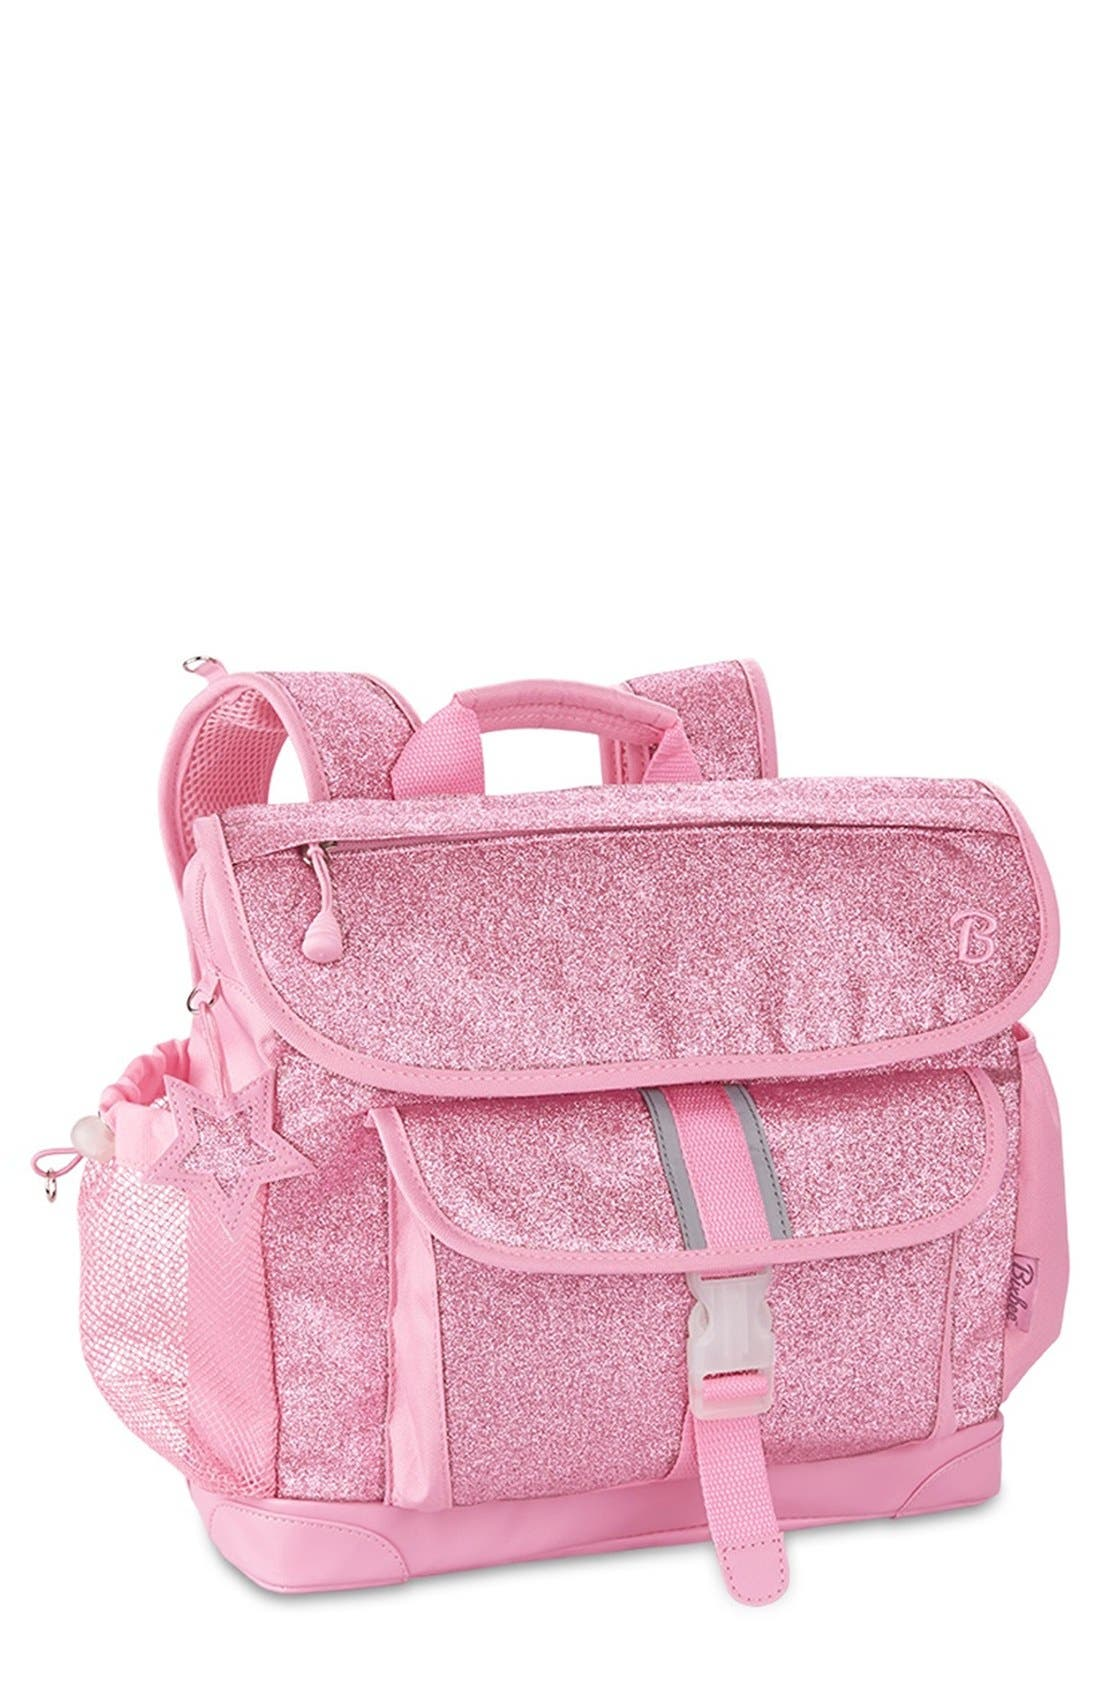 'Medium Sparkalicious' Backpack,                             Main thumbnail 1, color,                             Pink